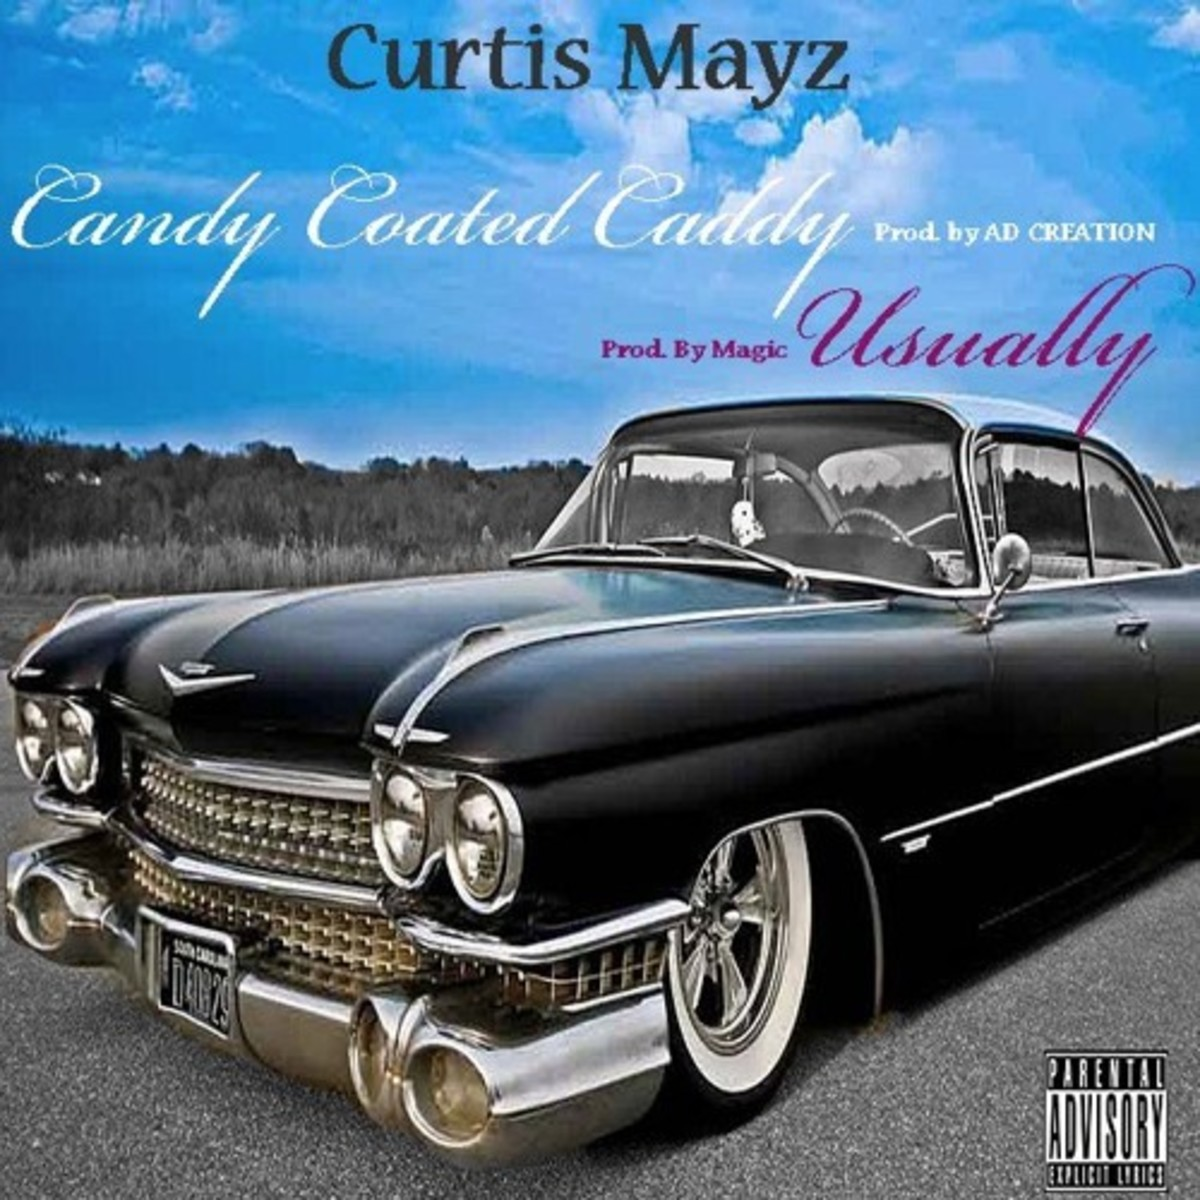 curtis-mayz-candy-coated-caddy.jpg